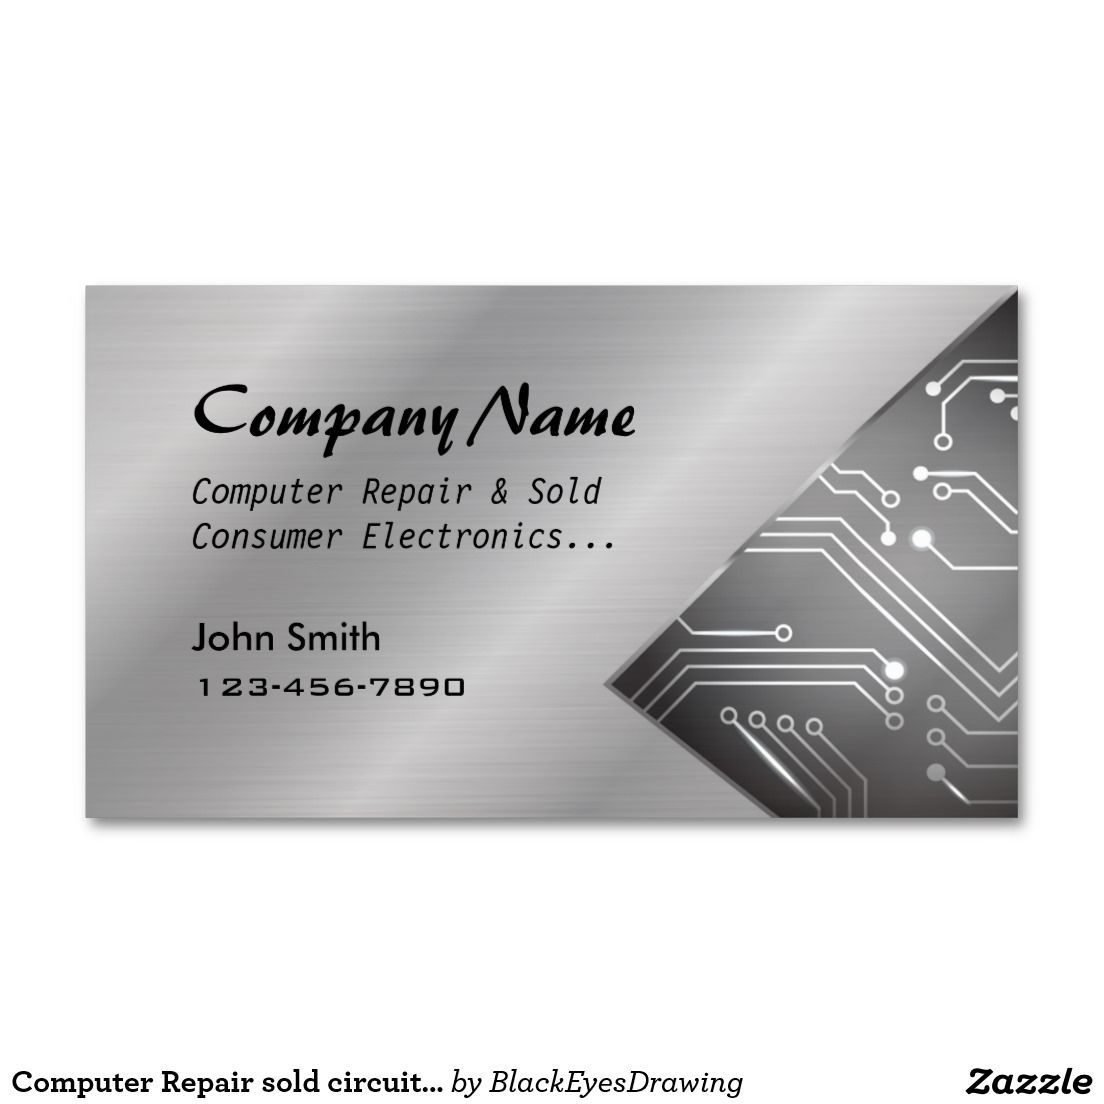 Computer Repair sold circuit board business cards | Computer repair ...